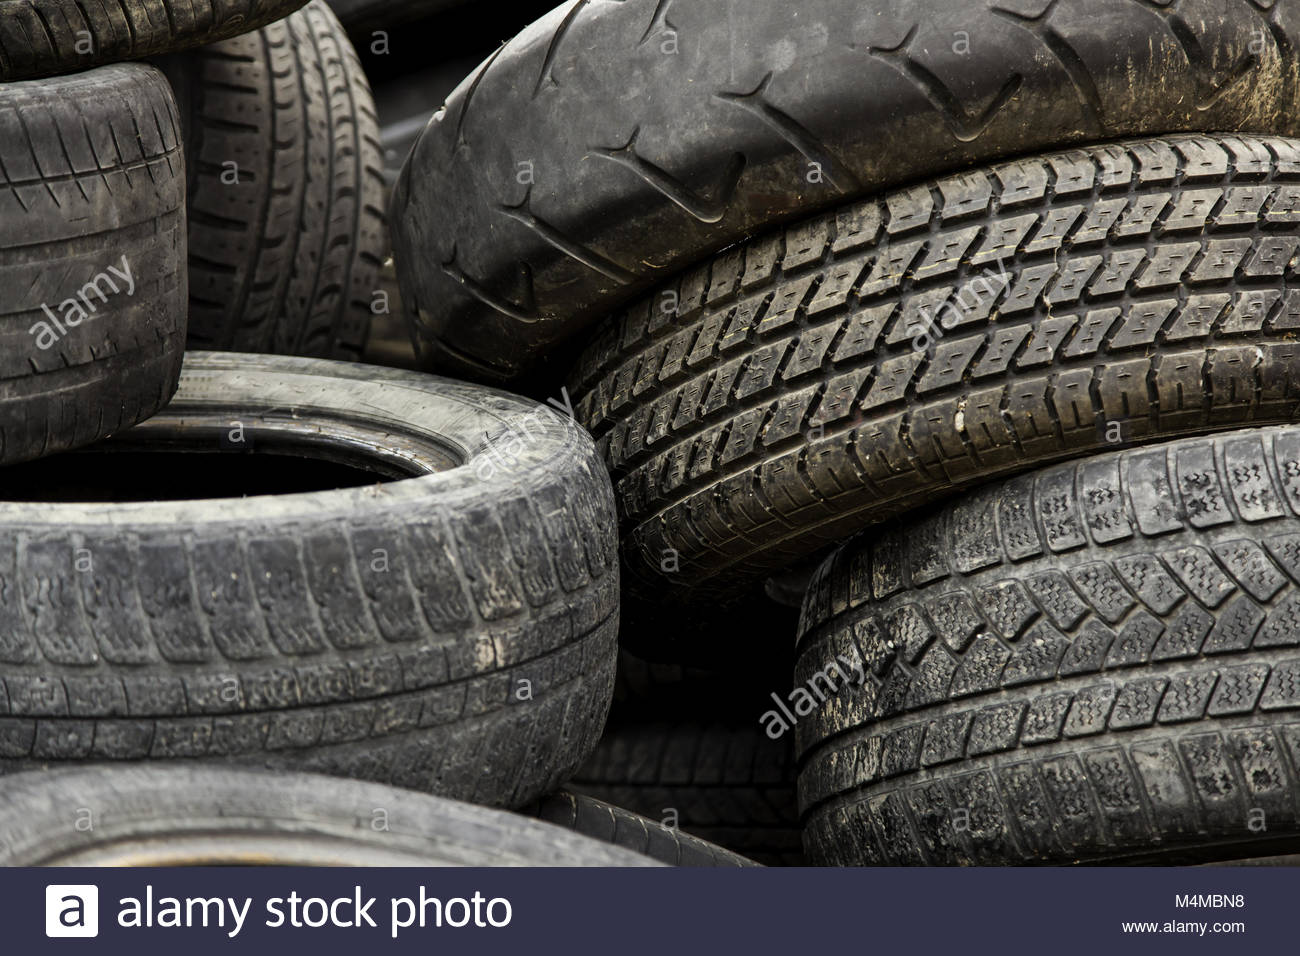 Old car tires in a landfill - Stock Image